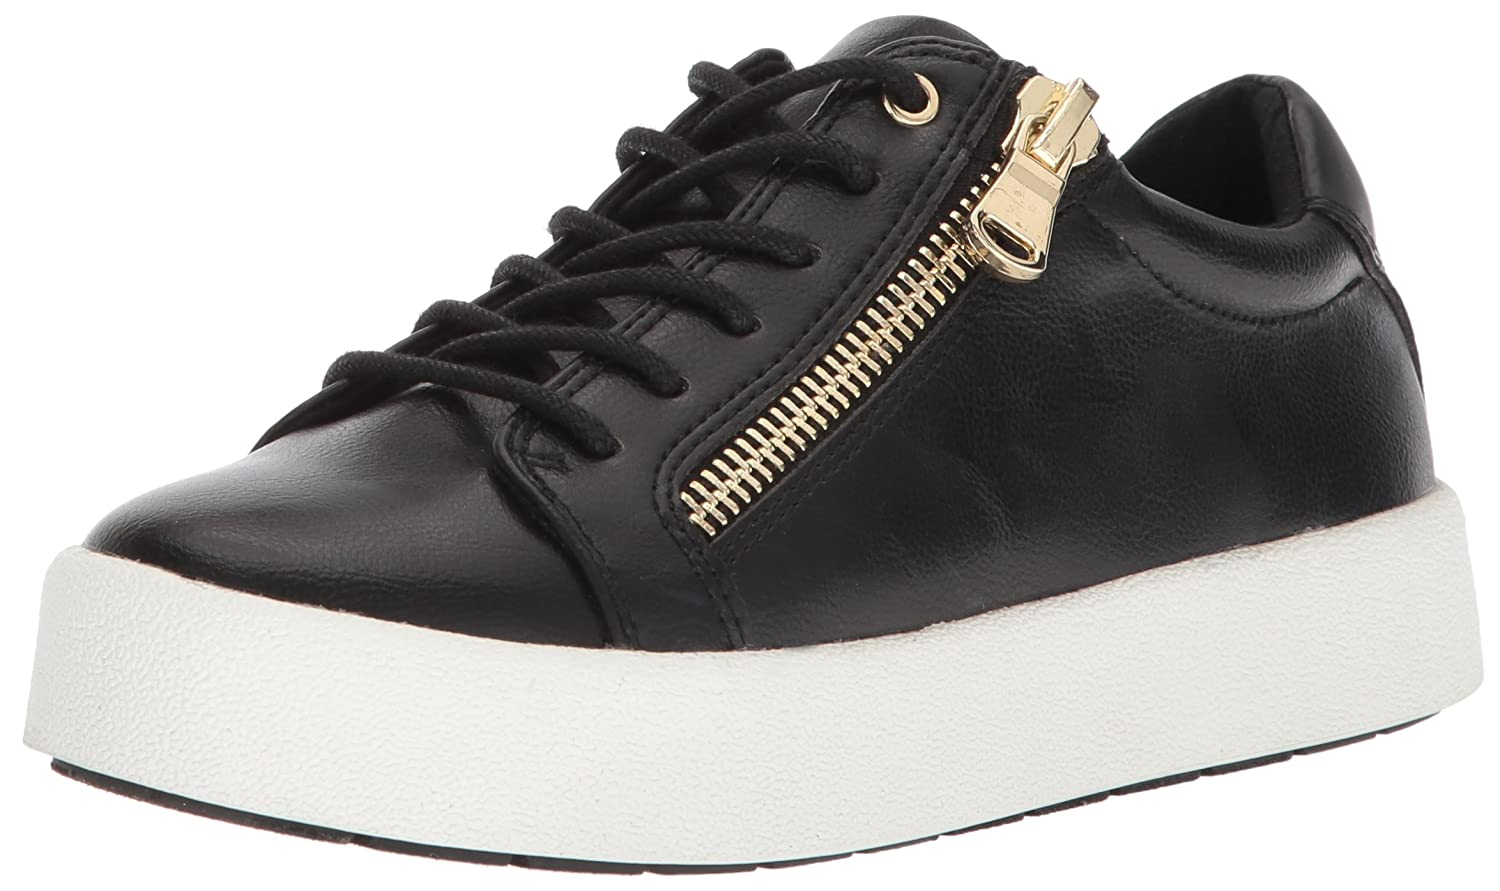 ALDO Women's Herschman Platform B0743RXQR5 5 B(M) US|Black Synthetic